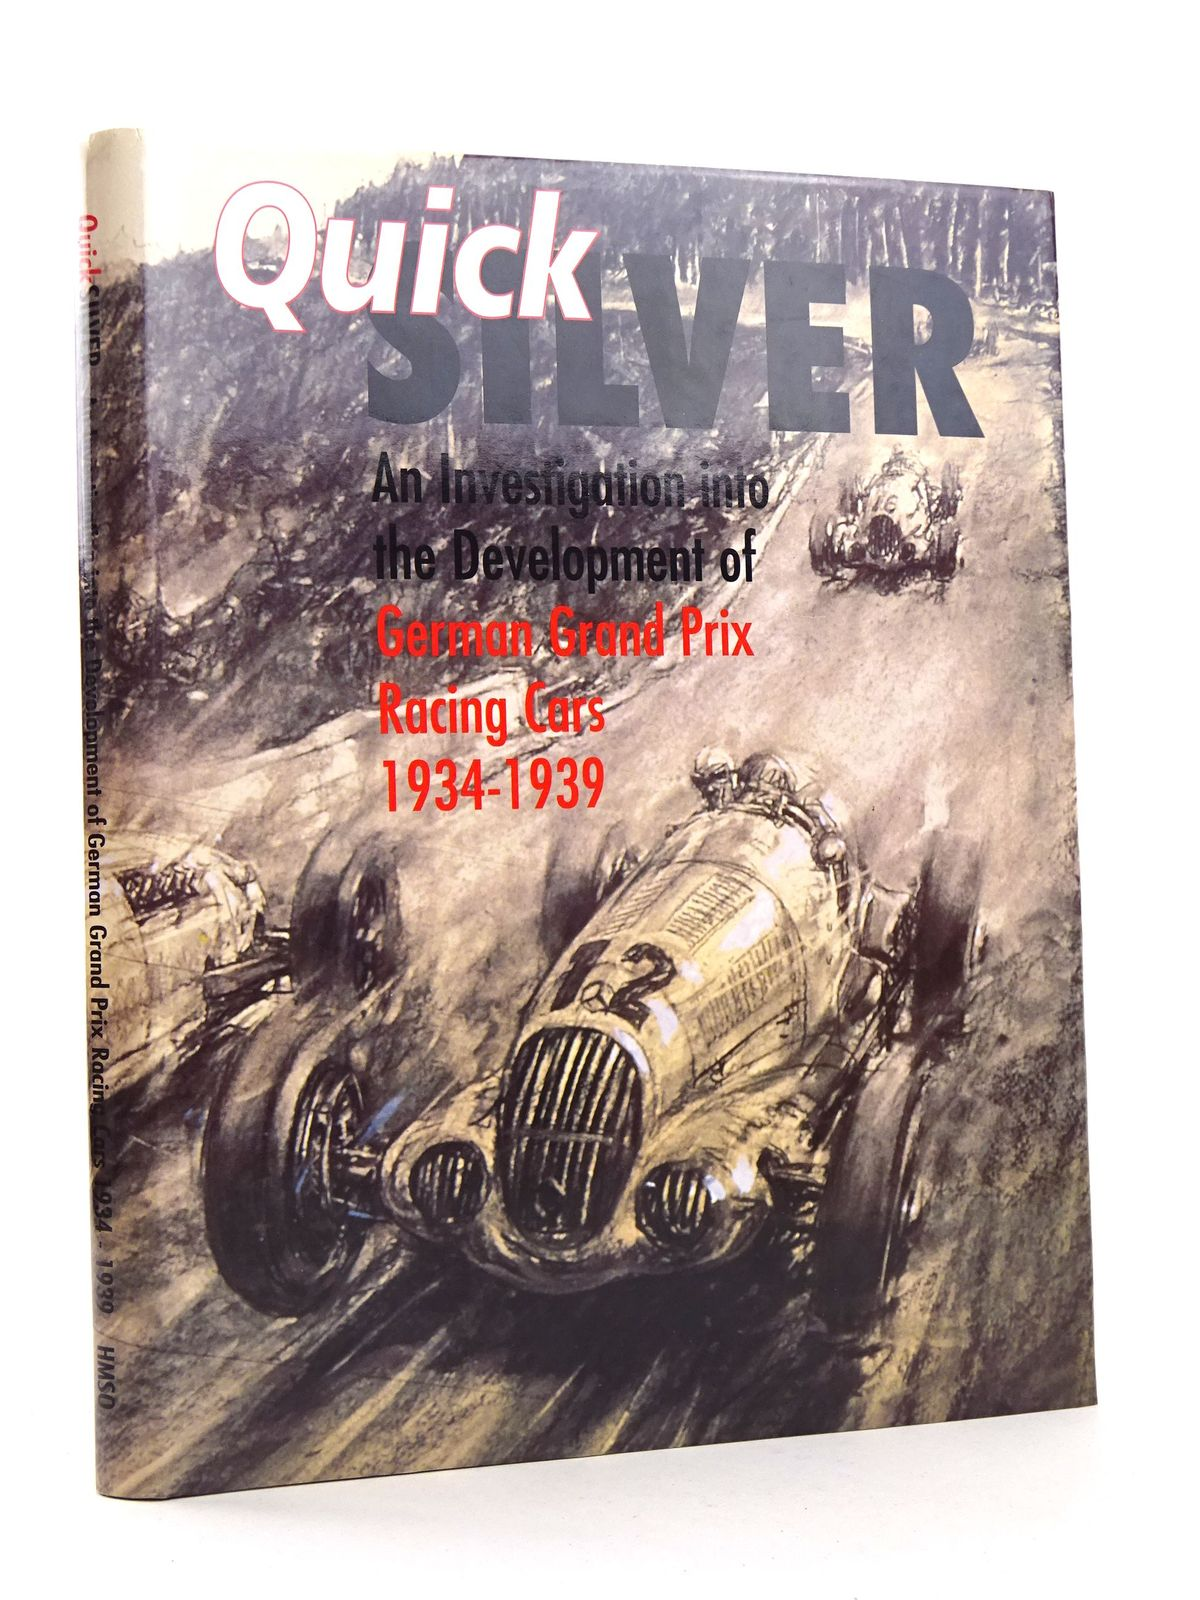 Photo of QUICK SILVER: AN INVESTIGATION INTO THE DEVELOPMENT OF GERMAN GRAND PRIX RACING CARS 1934-1939 written by Earl, Cameron C. published by HMSO (STOCK CODE: 1818256)  for sale by Stella & Rose's Books